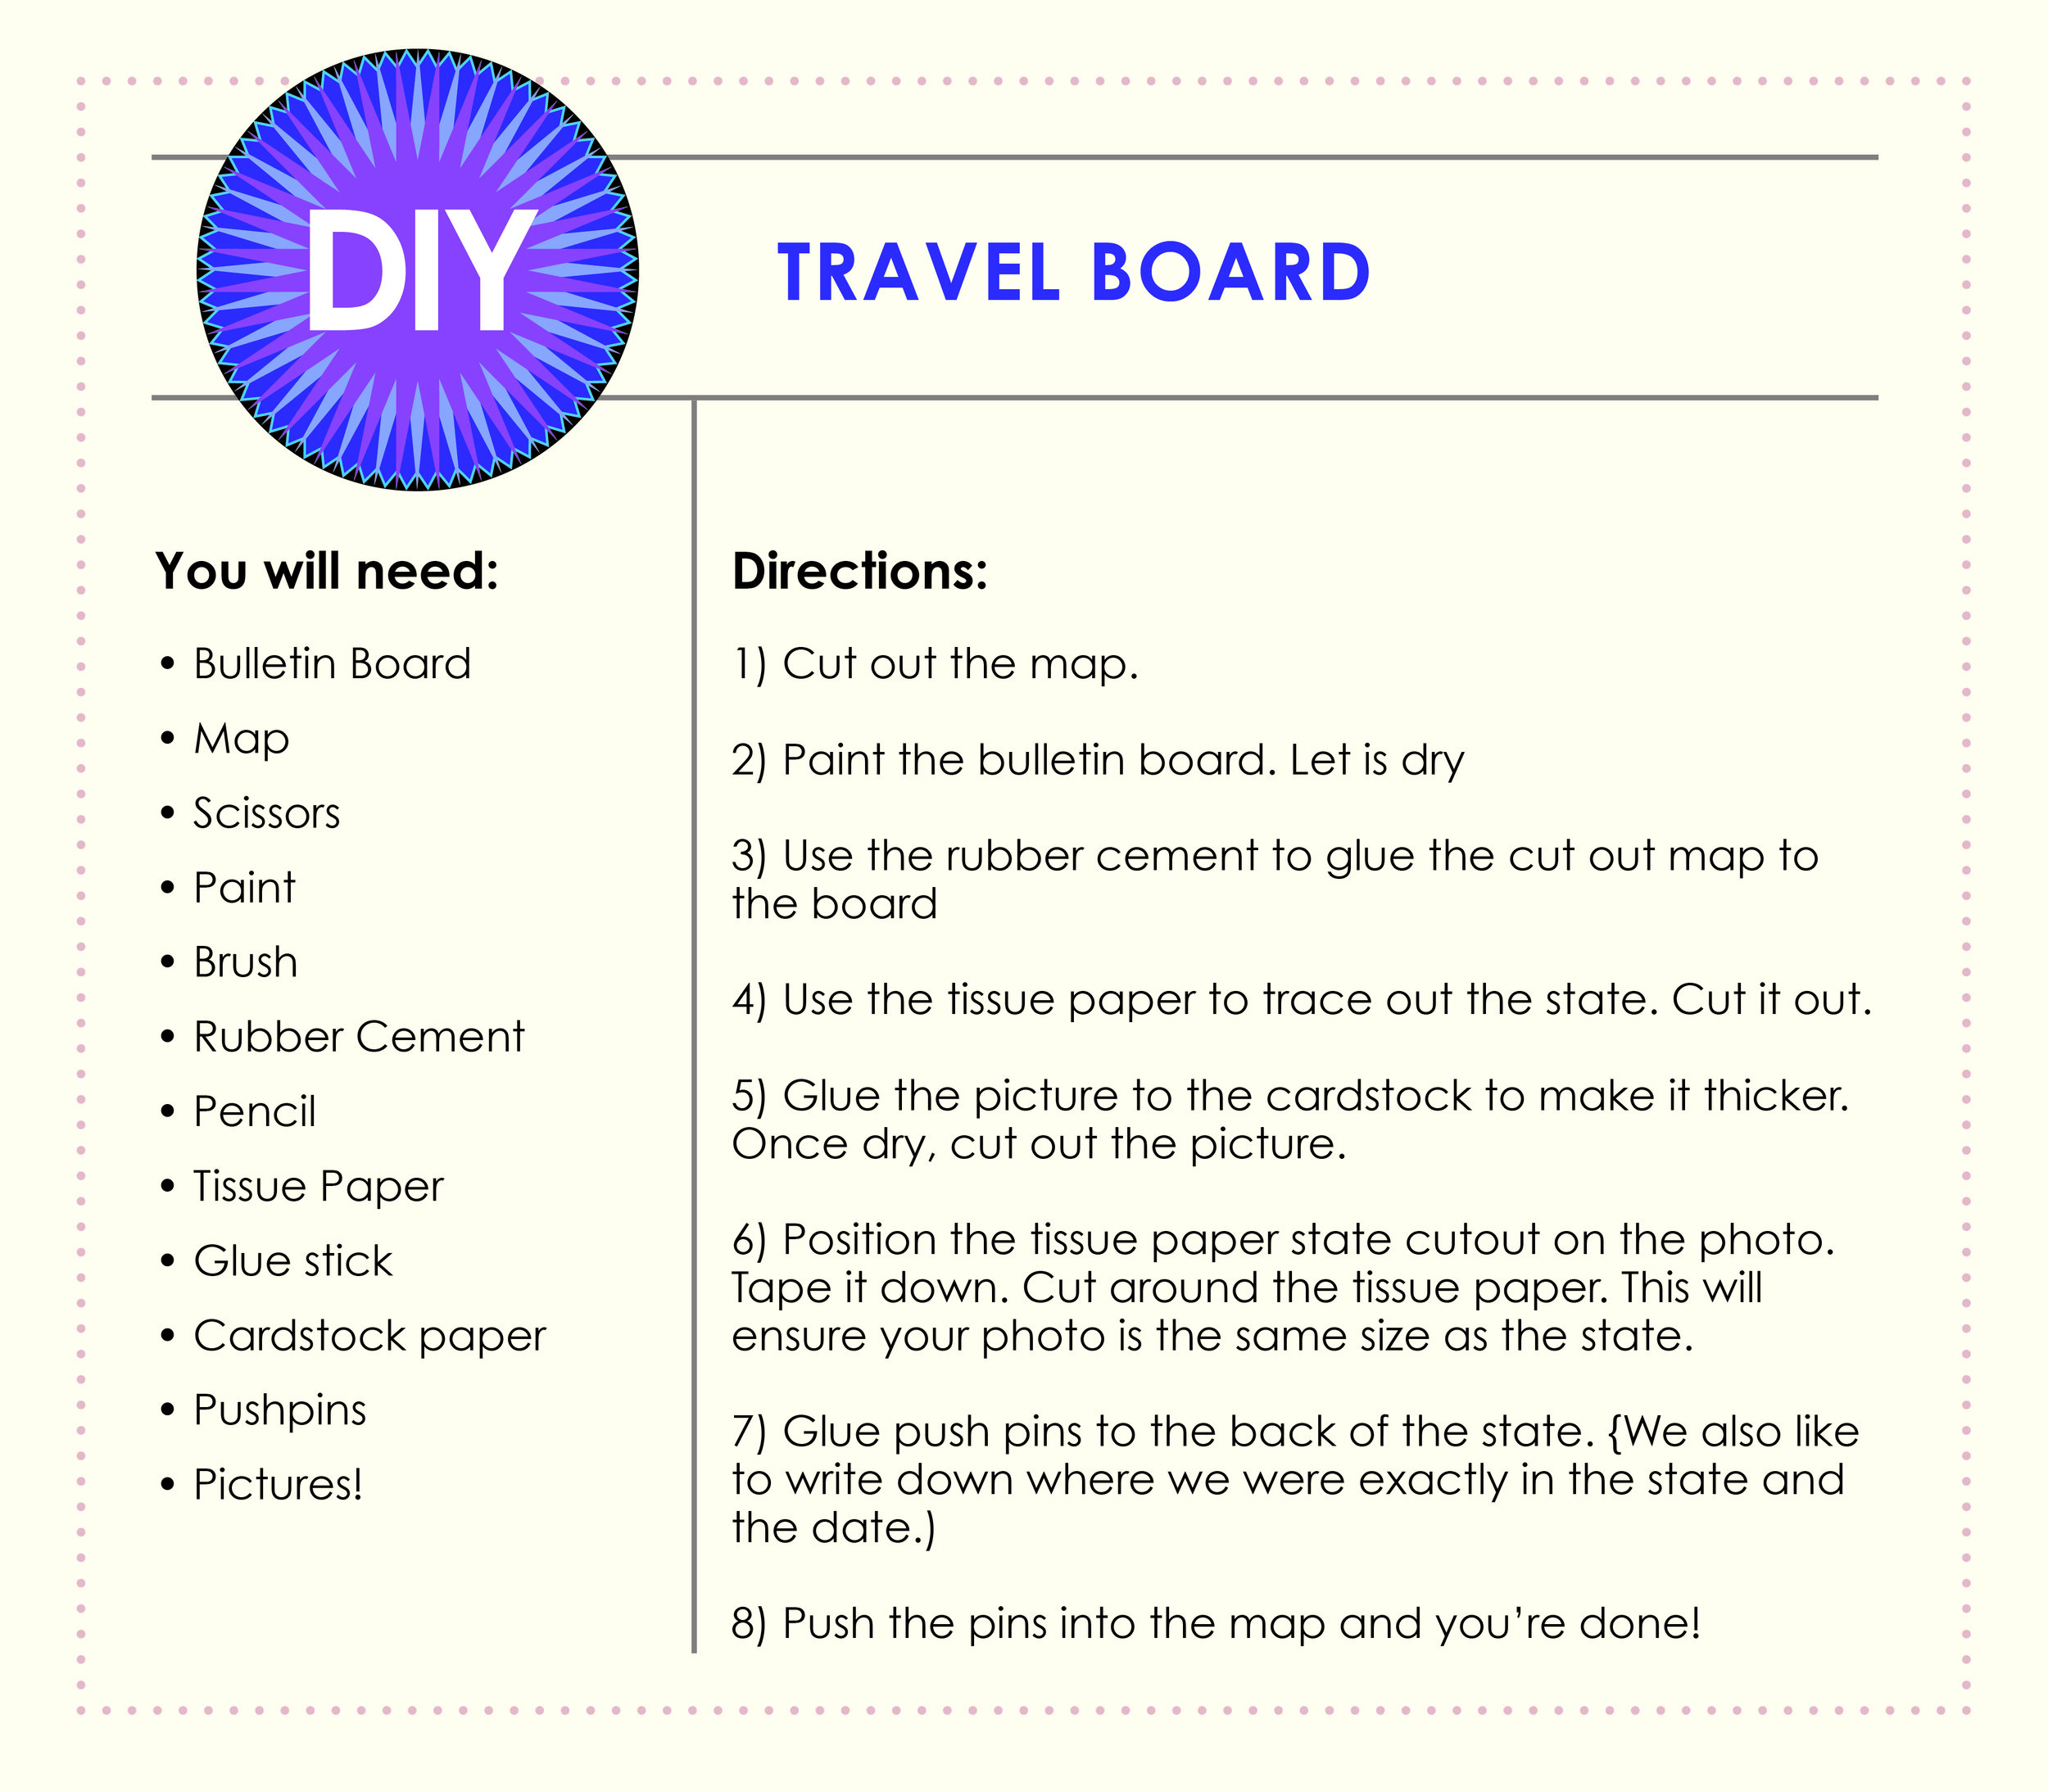 Travel_Board_DIY.jpg